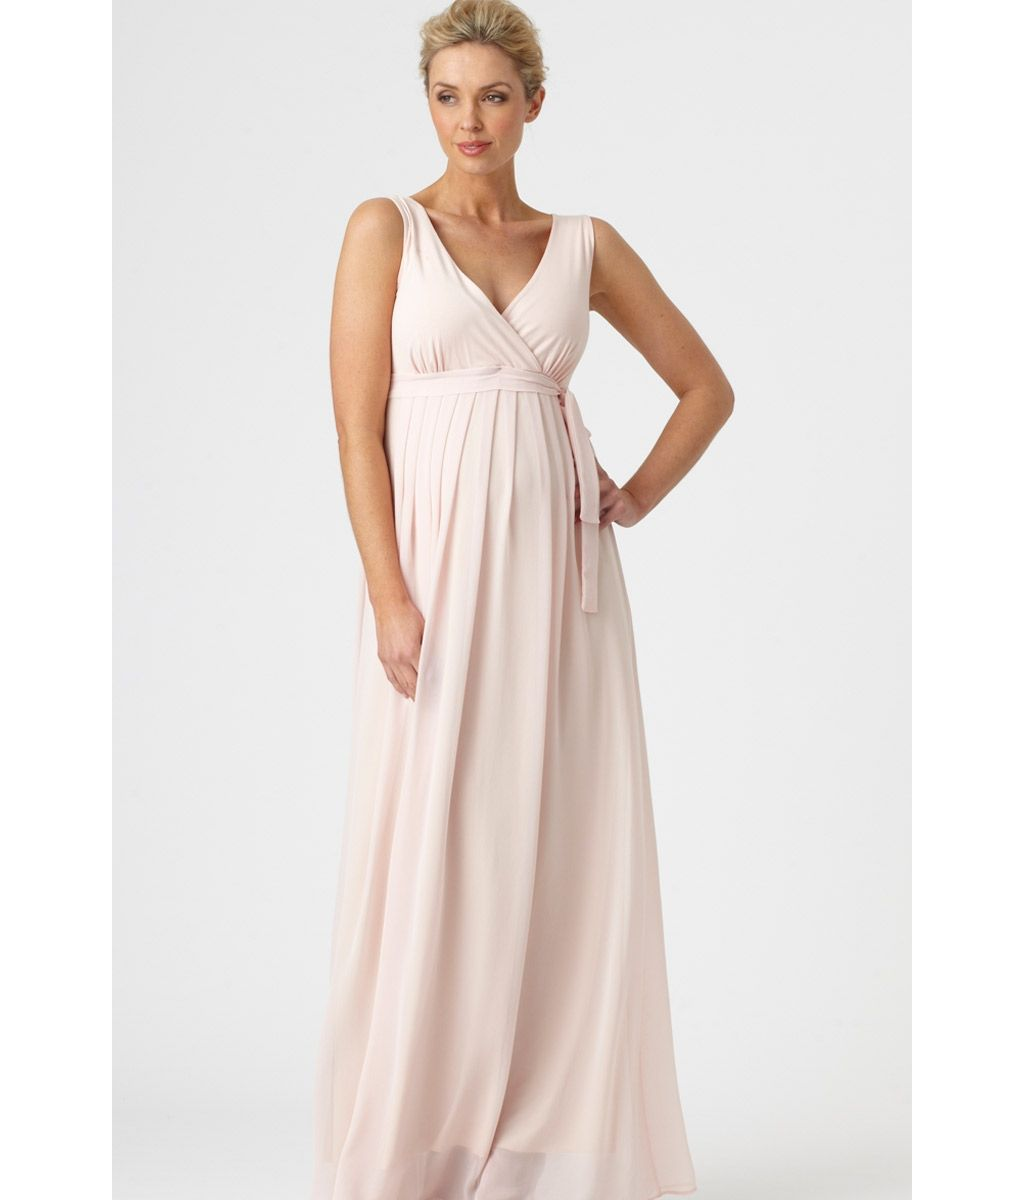 Pea in a pod maternity formal nursing dress jelly baby joy pea in a pod maternity formal nursing dress ombrellifo Image collections